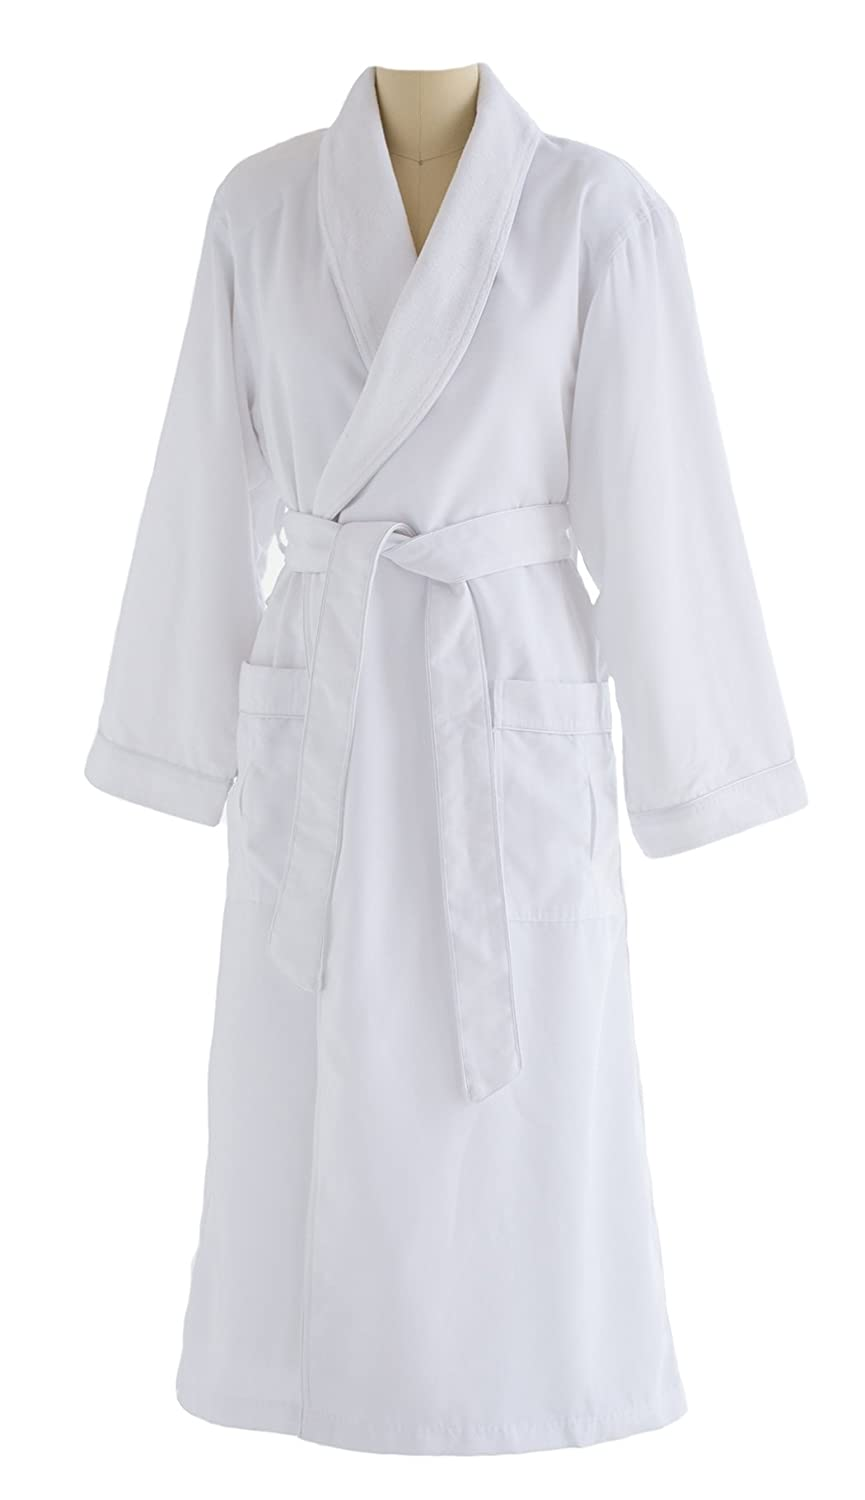 Chadsworth & Haig Ultimate Doeskin Microfiber Bathrobe Lined in Terry - Luxury Spa Bathrobe For Women and Men DSM4000